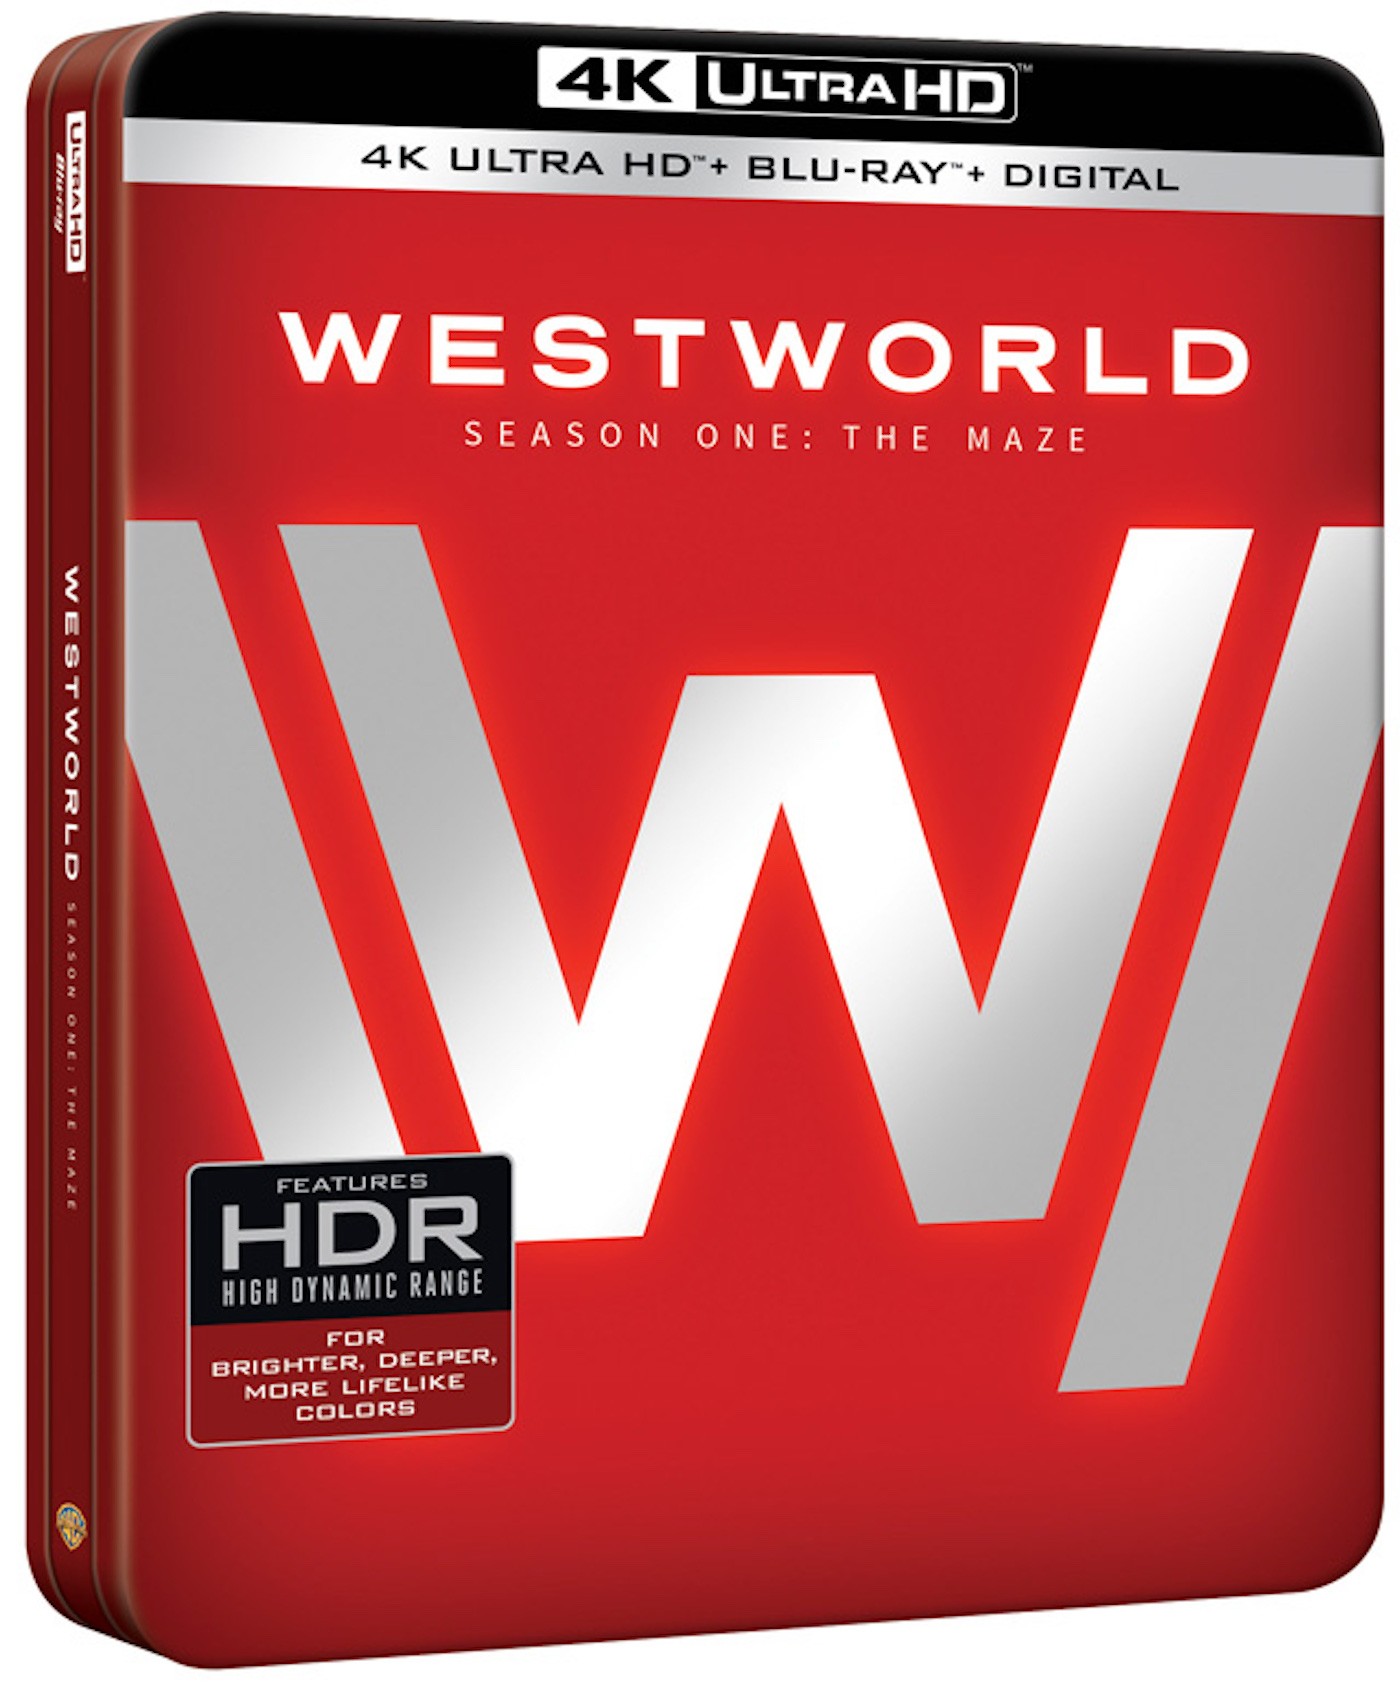 Westworld Season 1 Disc Package